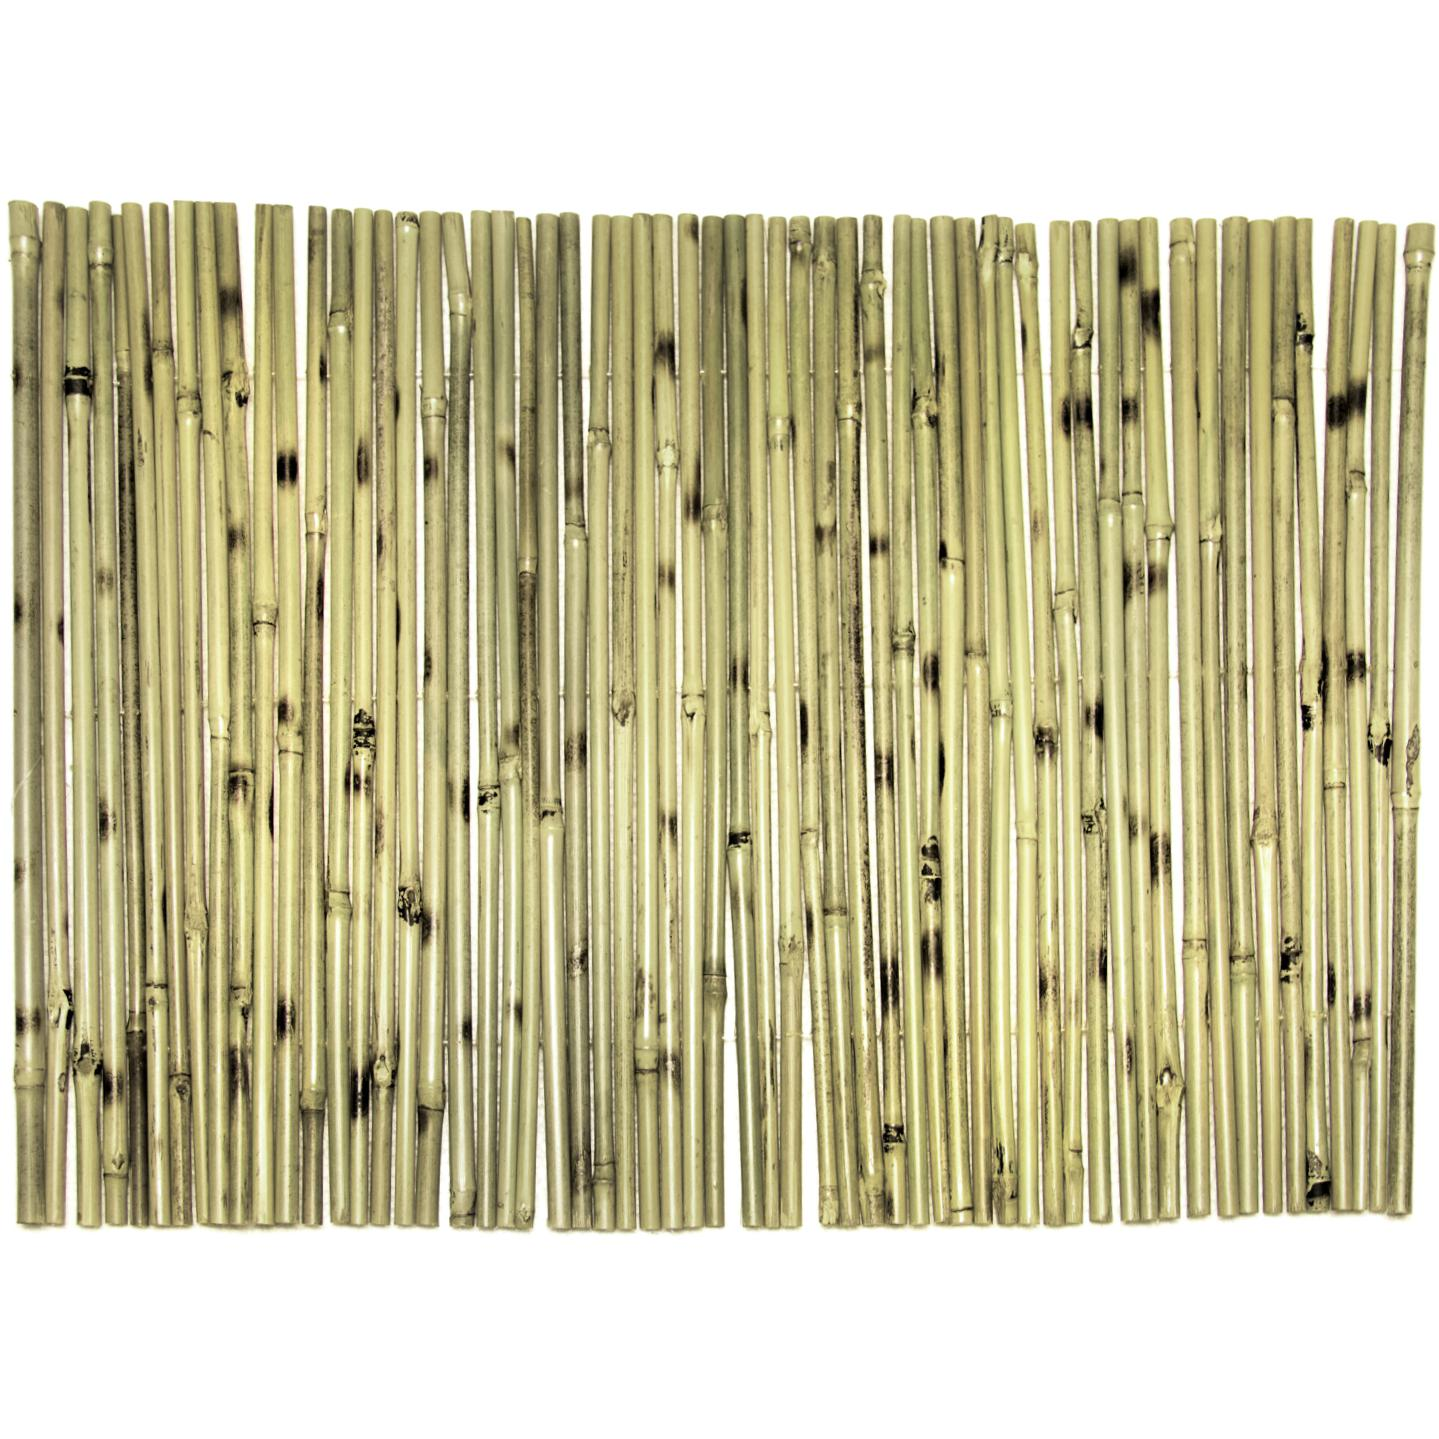 Picture of Bamboo 13 X 19 Placemat - Natural